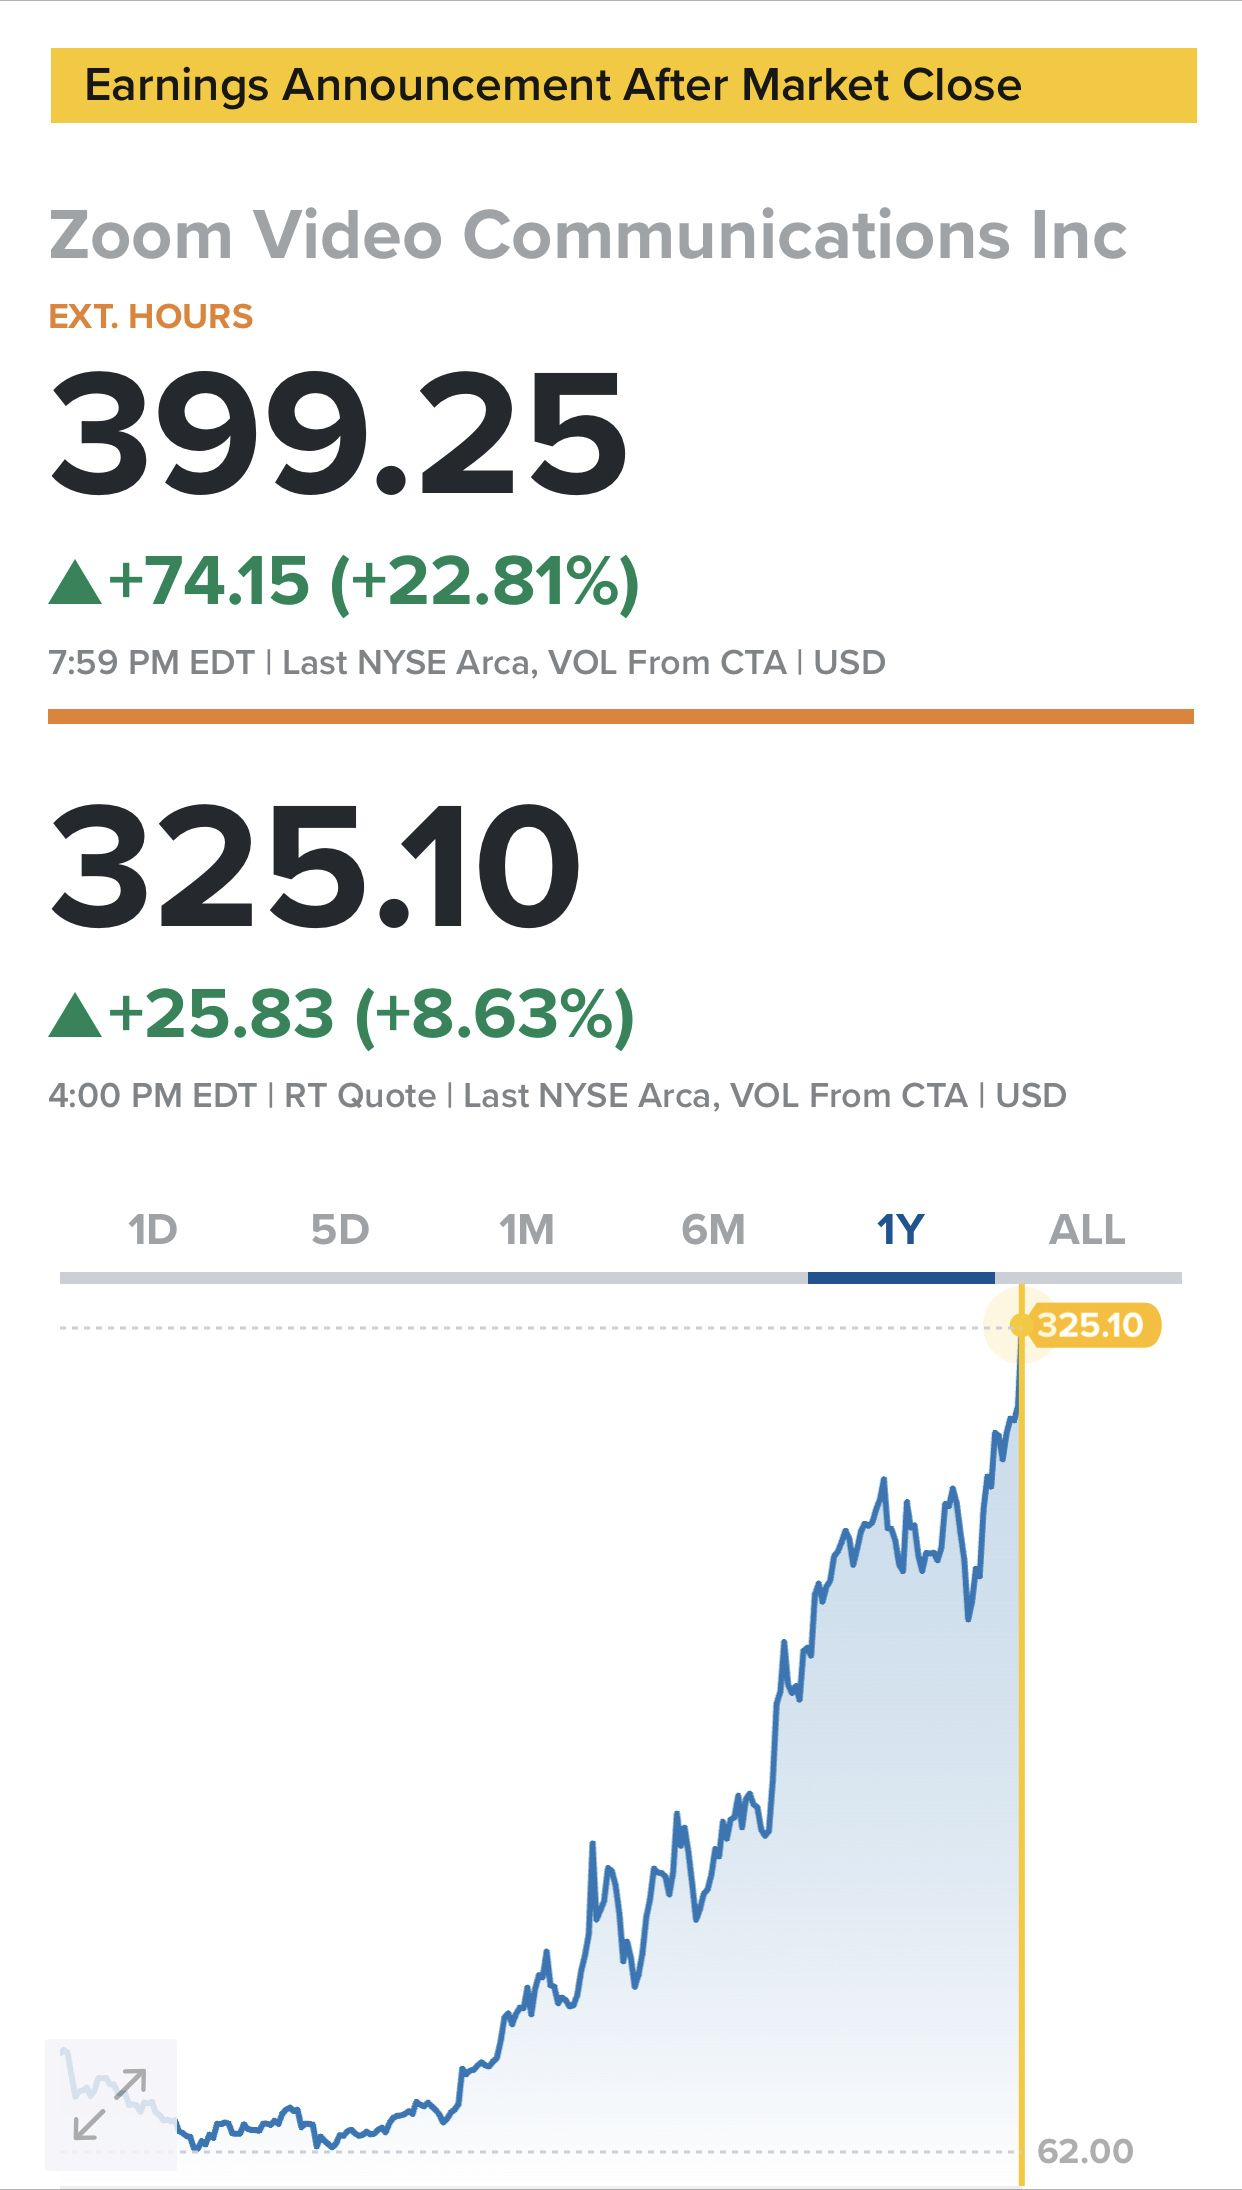 Zoom Revenues Skyrocket As Profits Double Check Out Insider Trading At Spiking Com Https Www Bb In 2020 Insider Trading Stock Market Zoom Video Communications